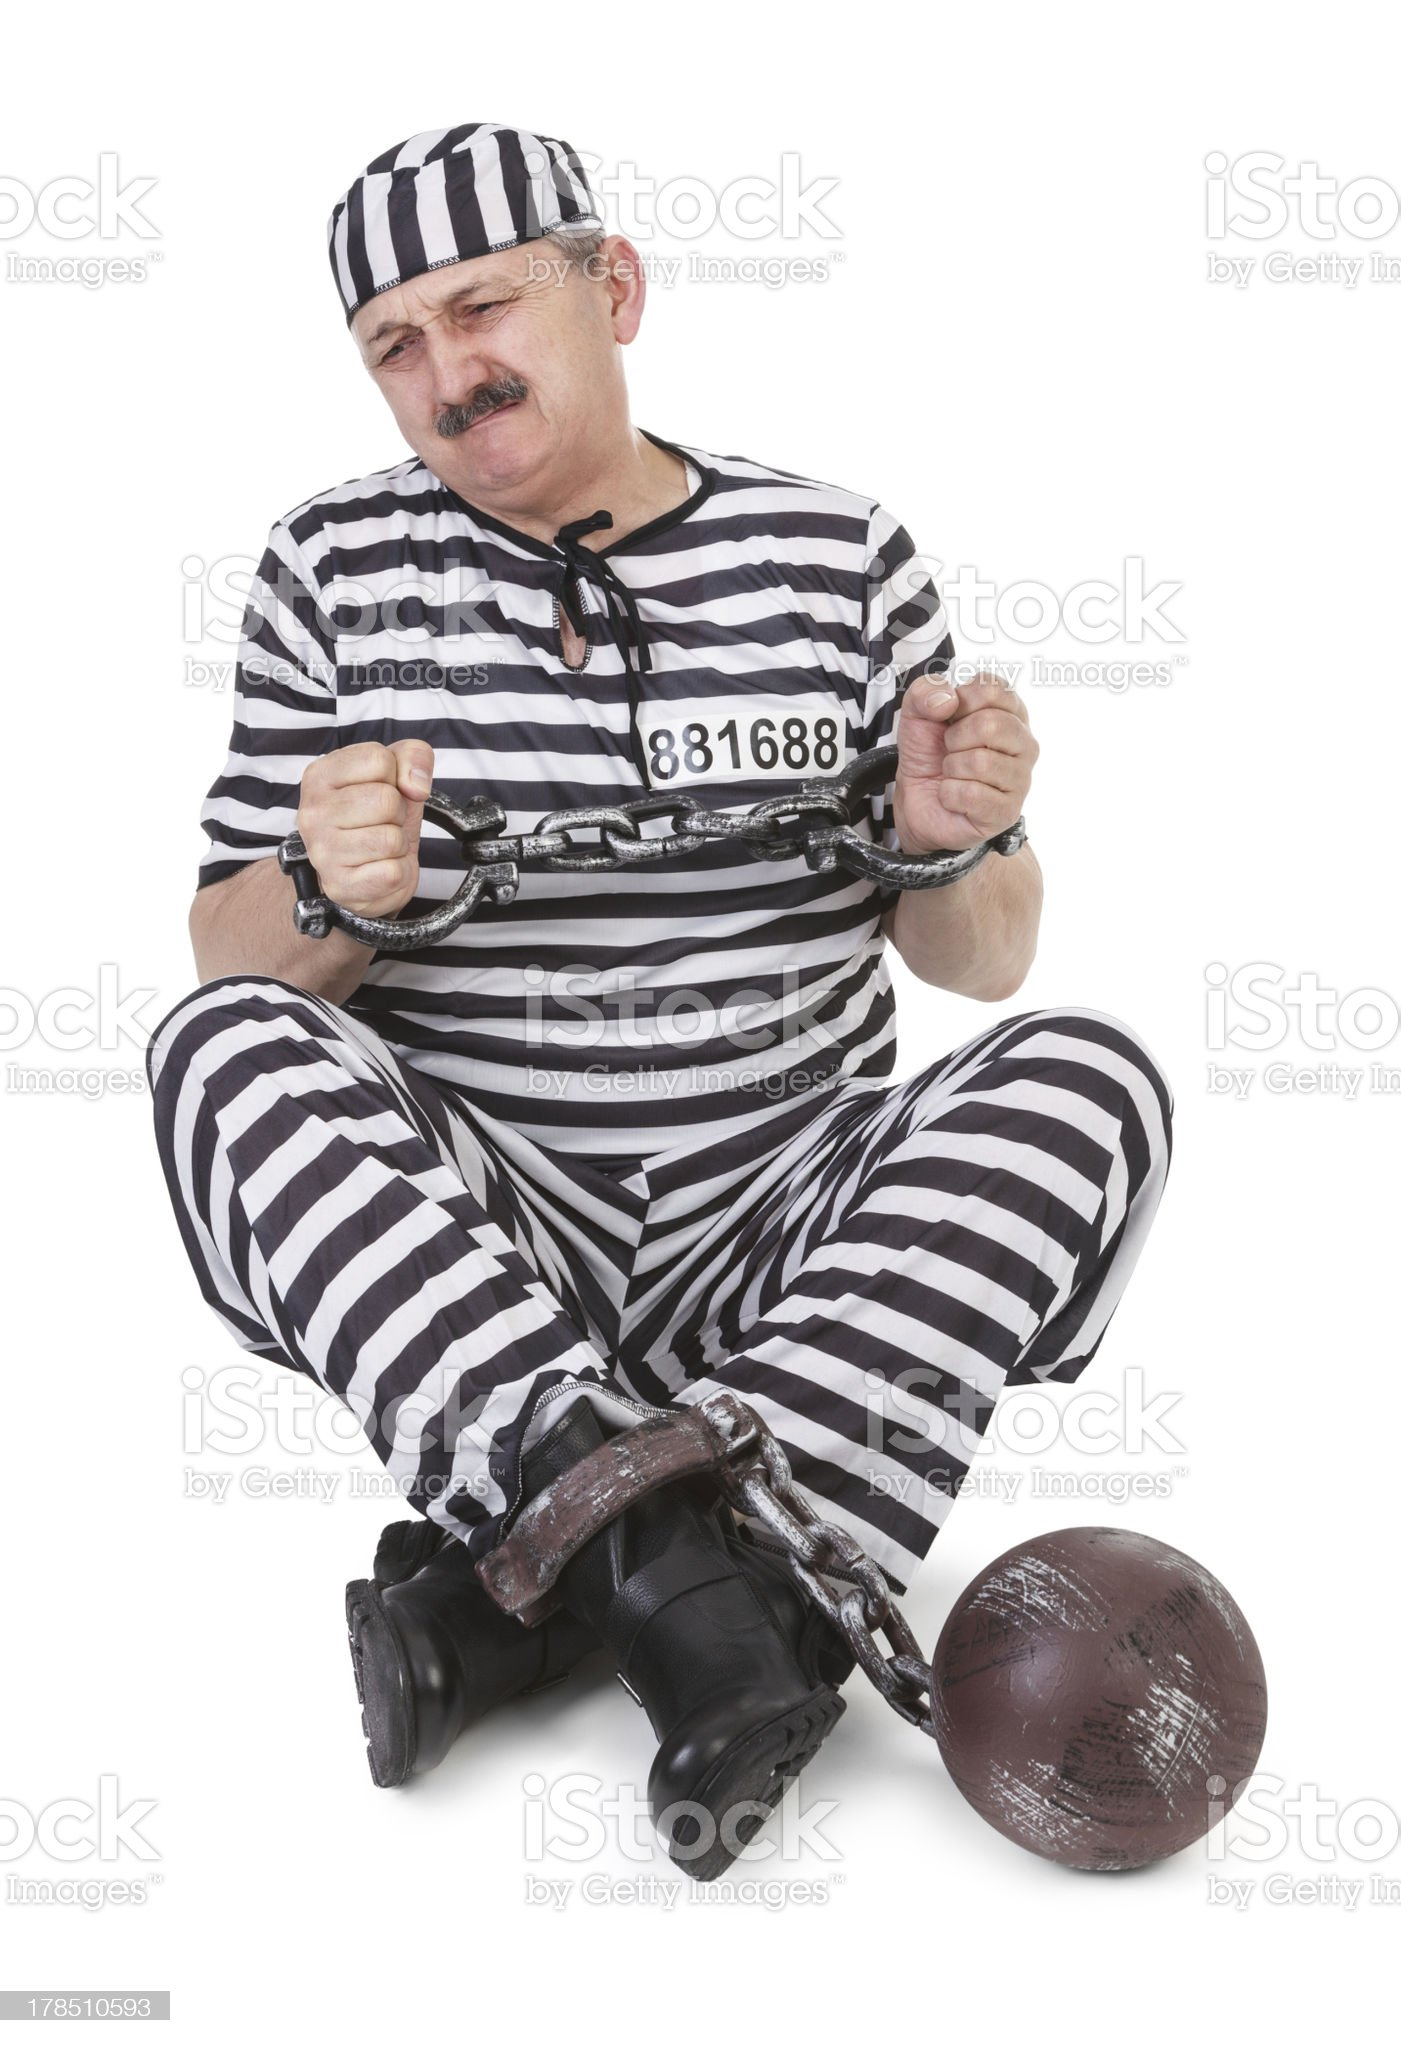 struggle with handcuffs royalty-free stock photo